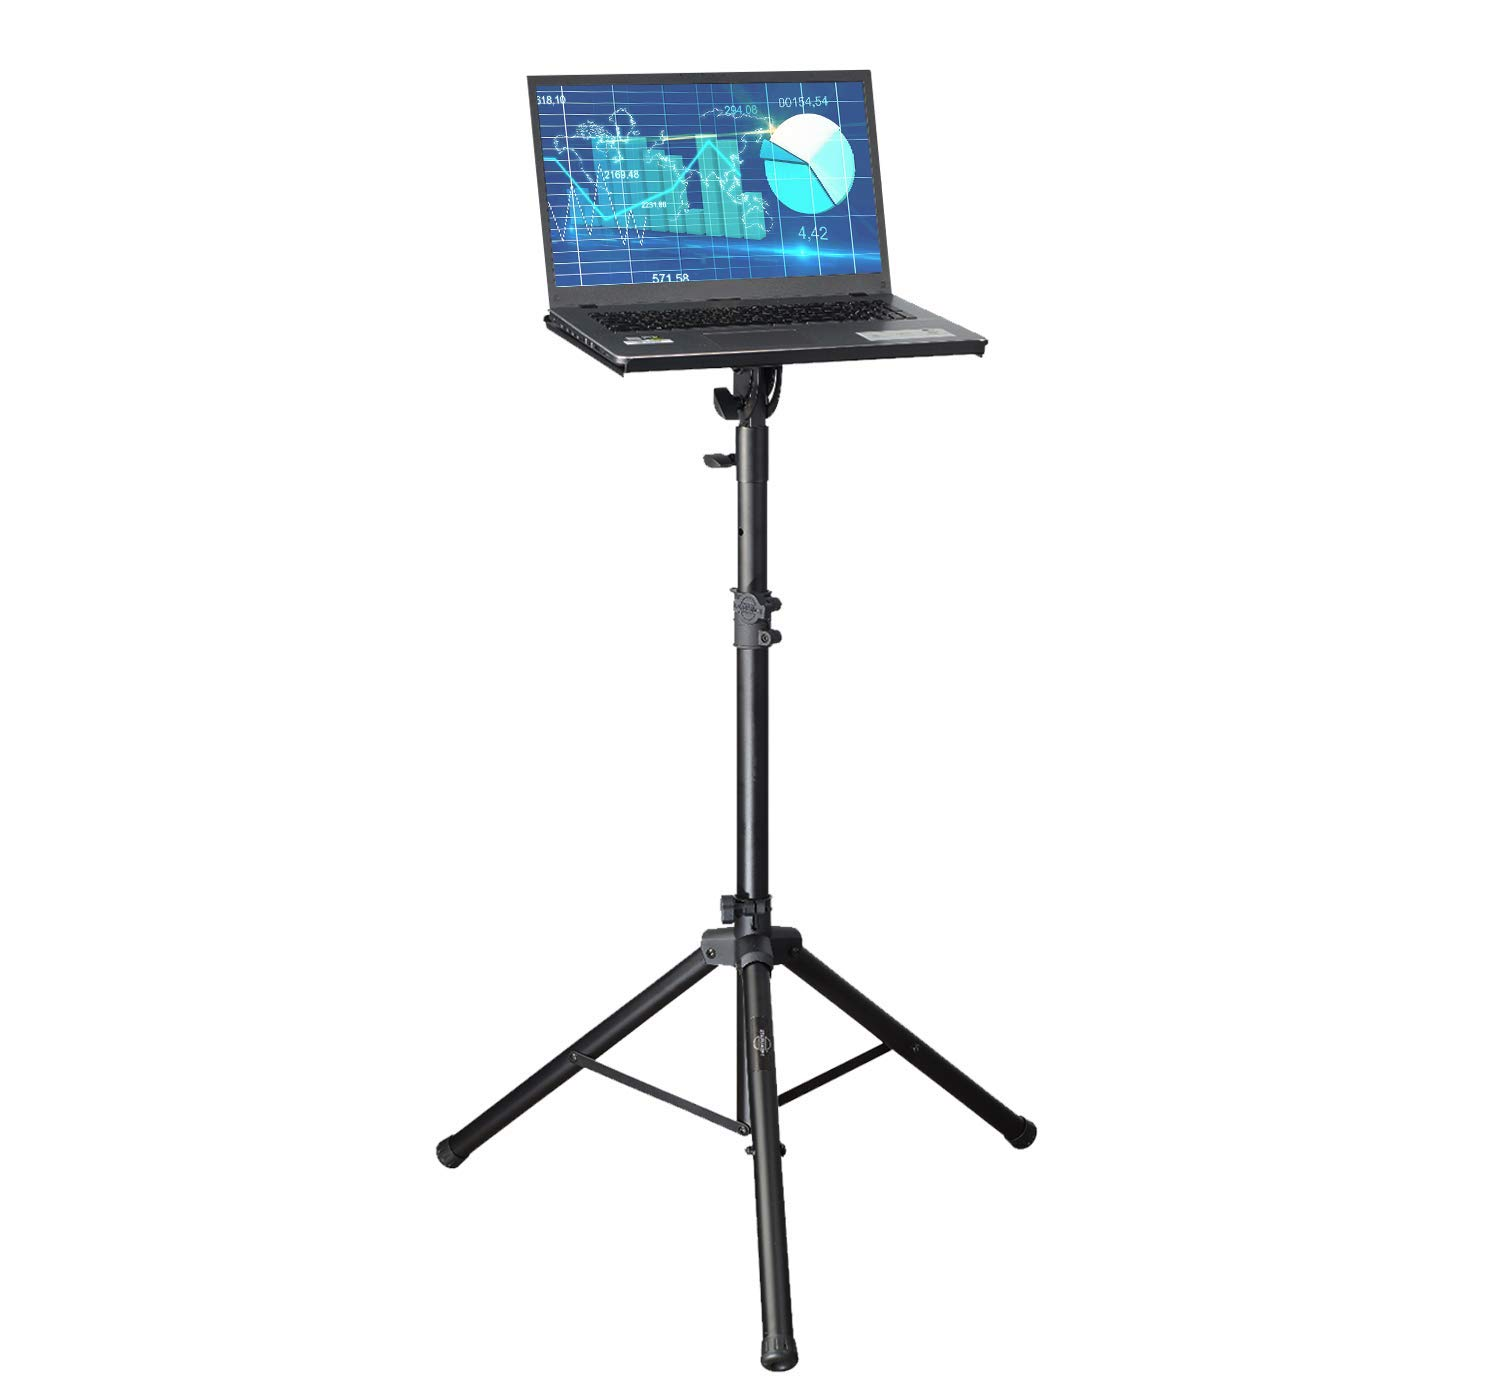 Professional Adjustable 32.3'' - 52'' Laptop DJ Mixer Tripod Stand | Lightweight & Portable 15.3'' x 12.2'' Tilted Tri-Pod Tray for Processors, Audio Controllers & Tablets | Raised Edges for Protection by STARUMENT